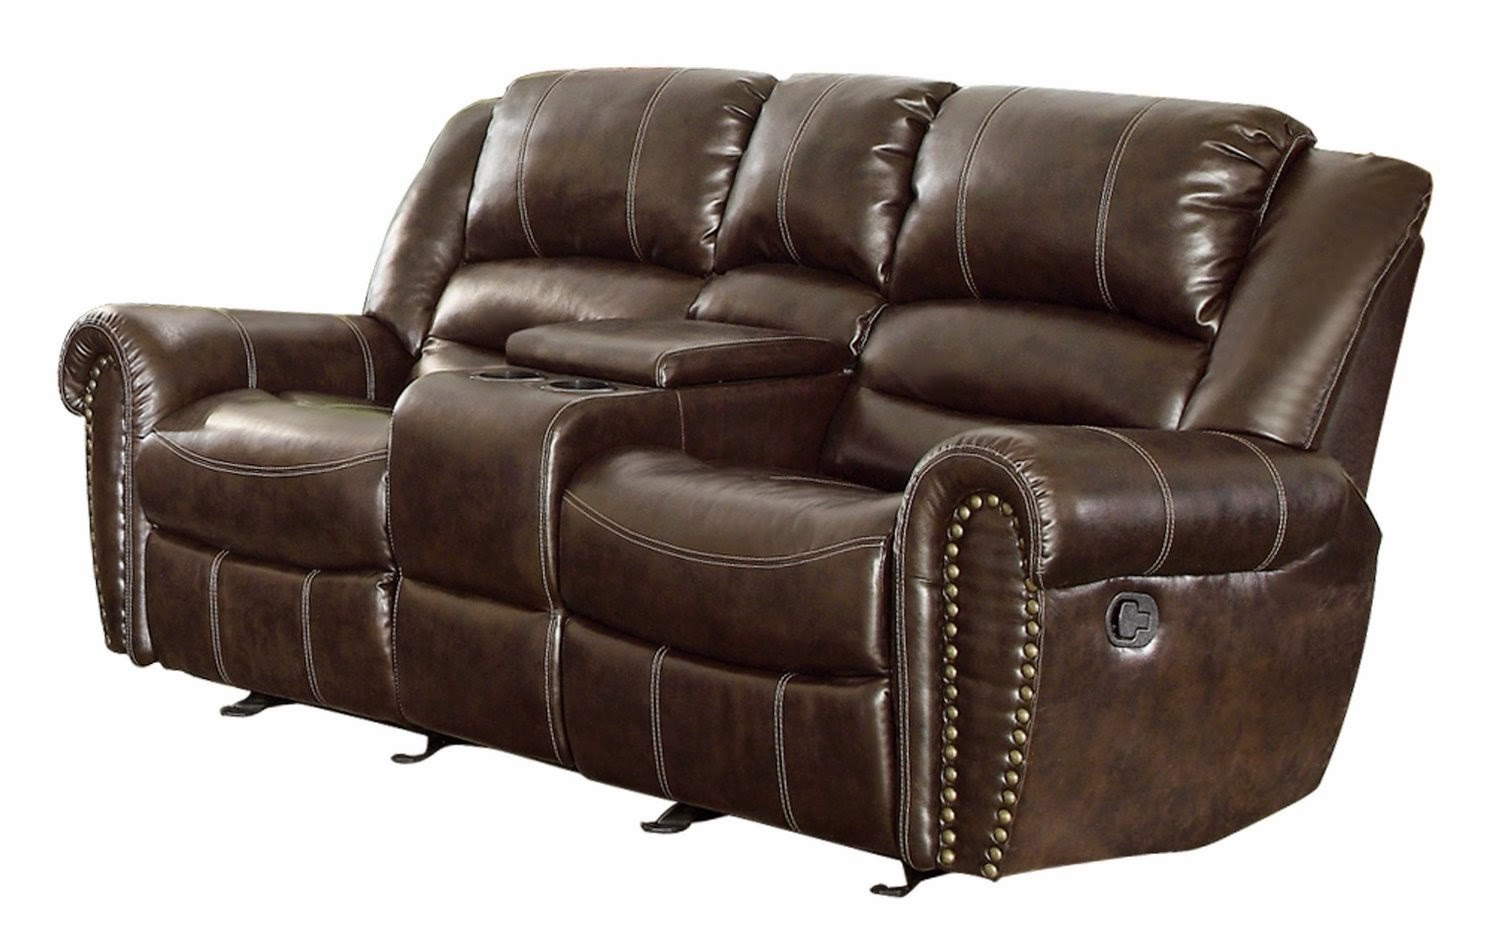 Cheap reclining sofas sale 2 seater leather recliner sofa sale Leather loveseat recliners